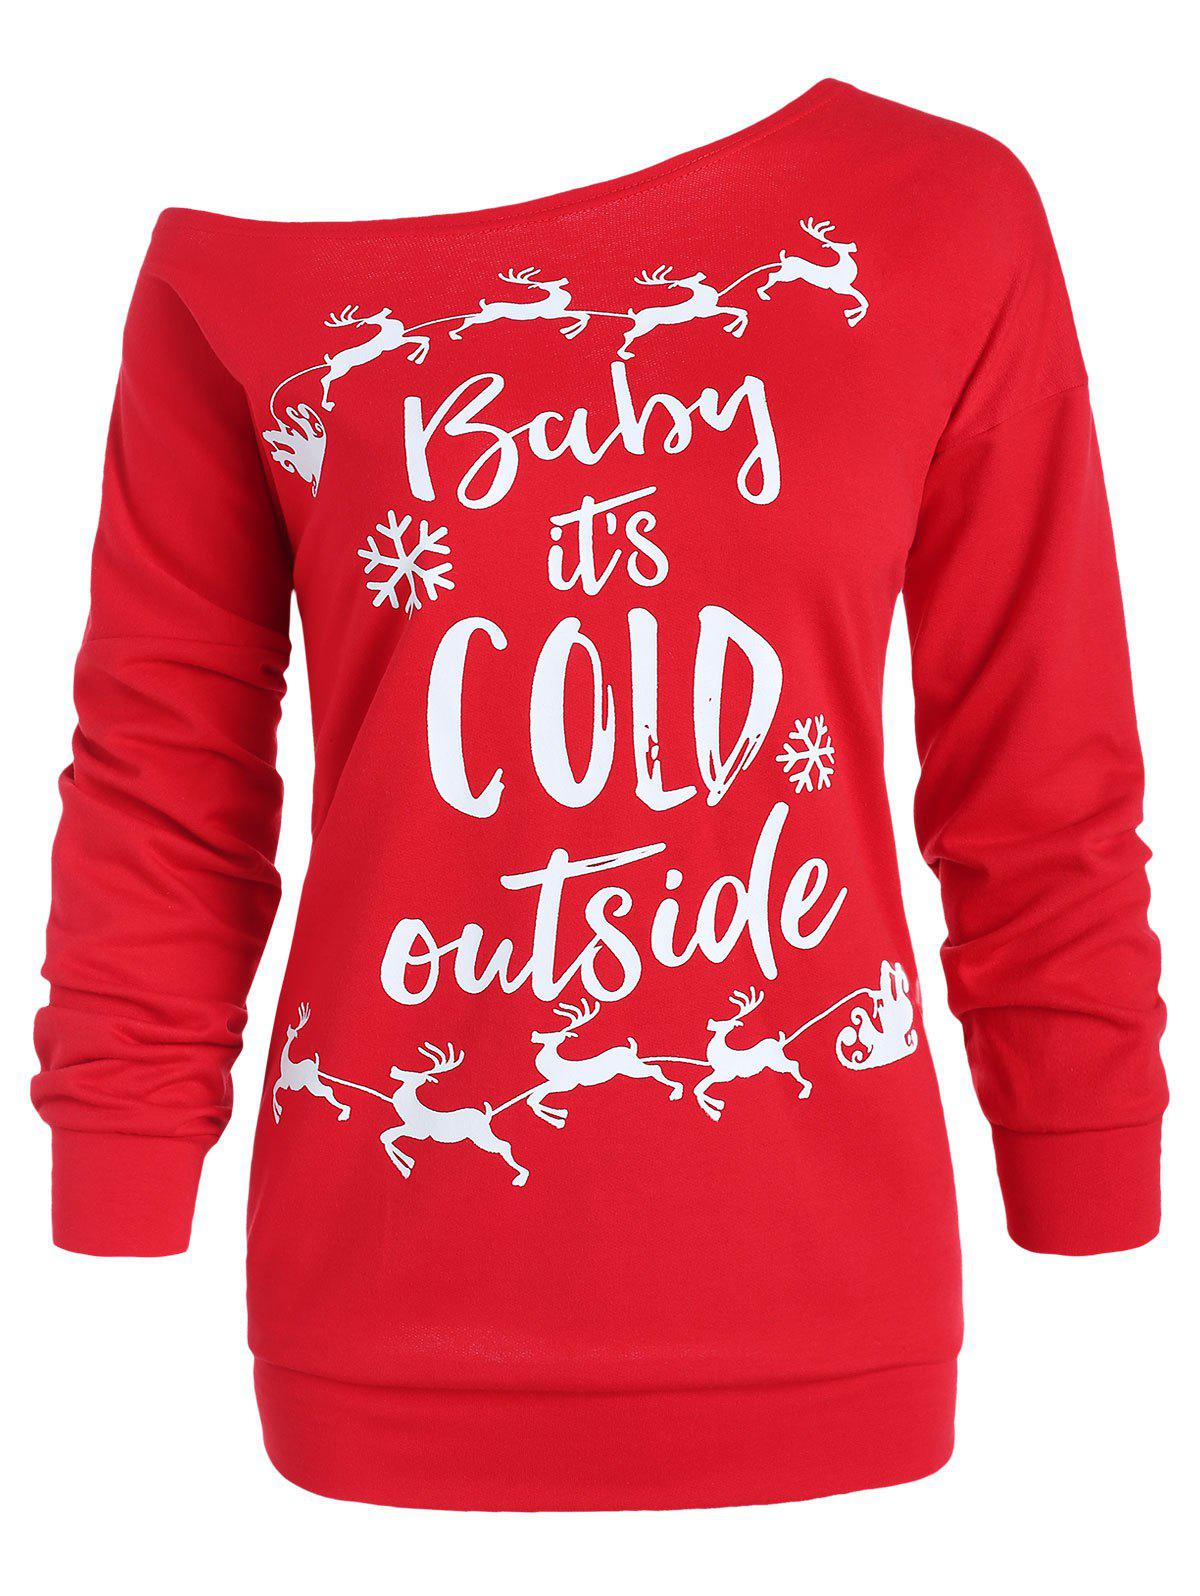 Sweatshirt graphique col rond grande taille Rouge 1X